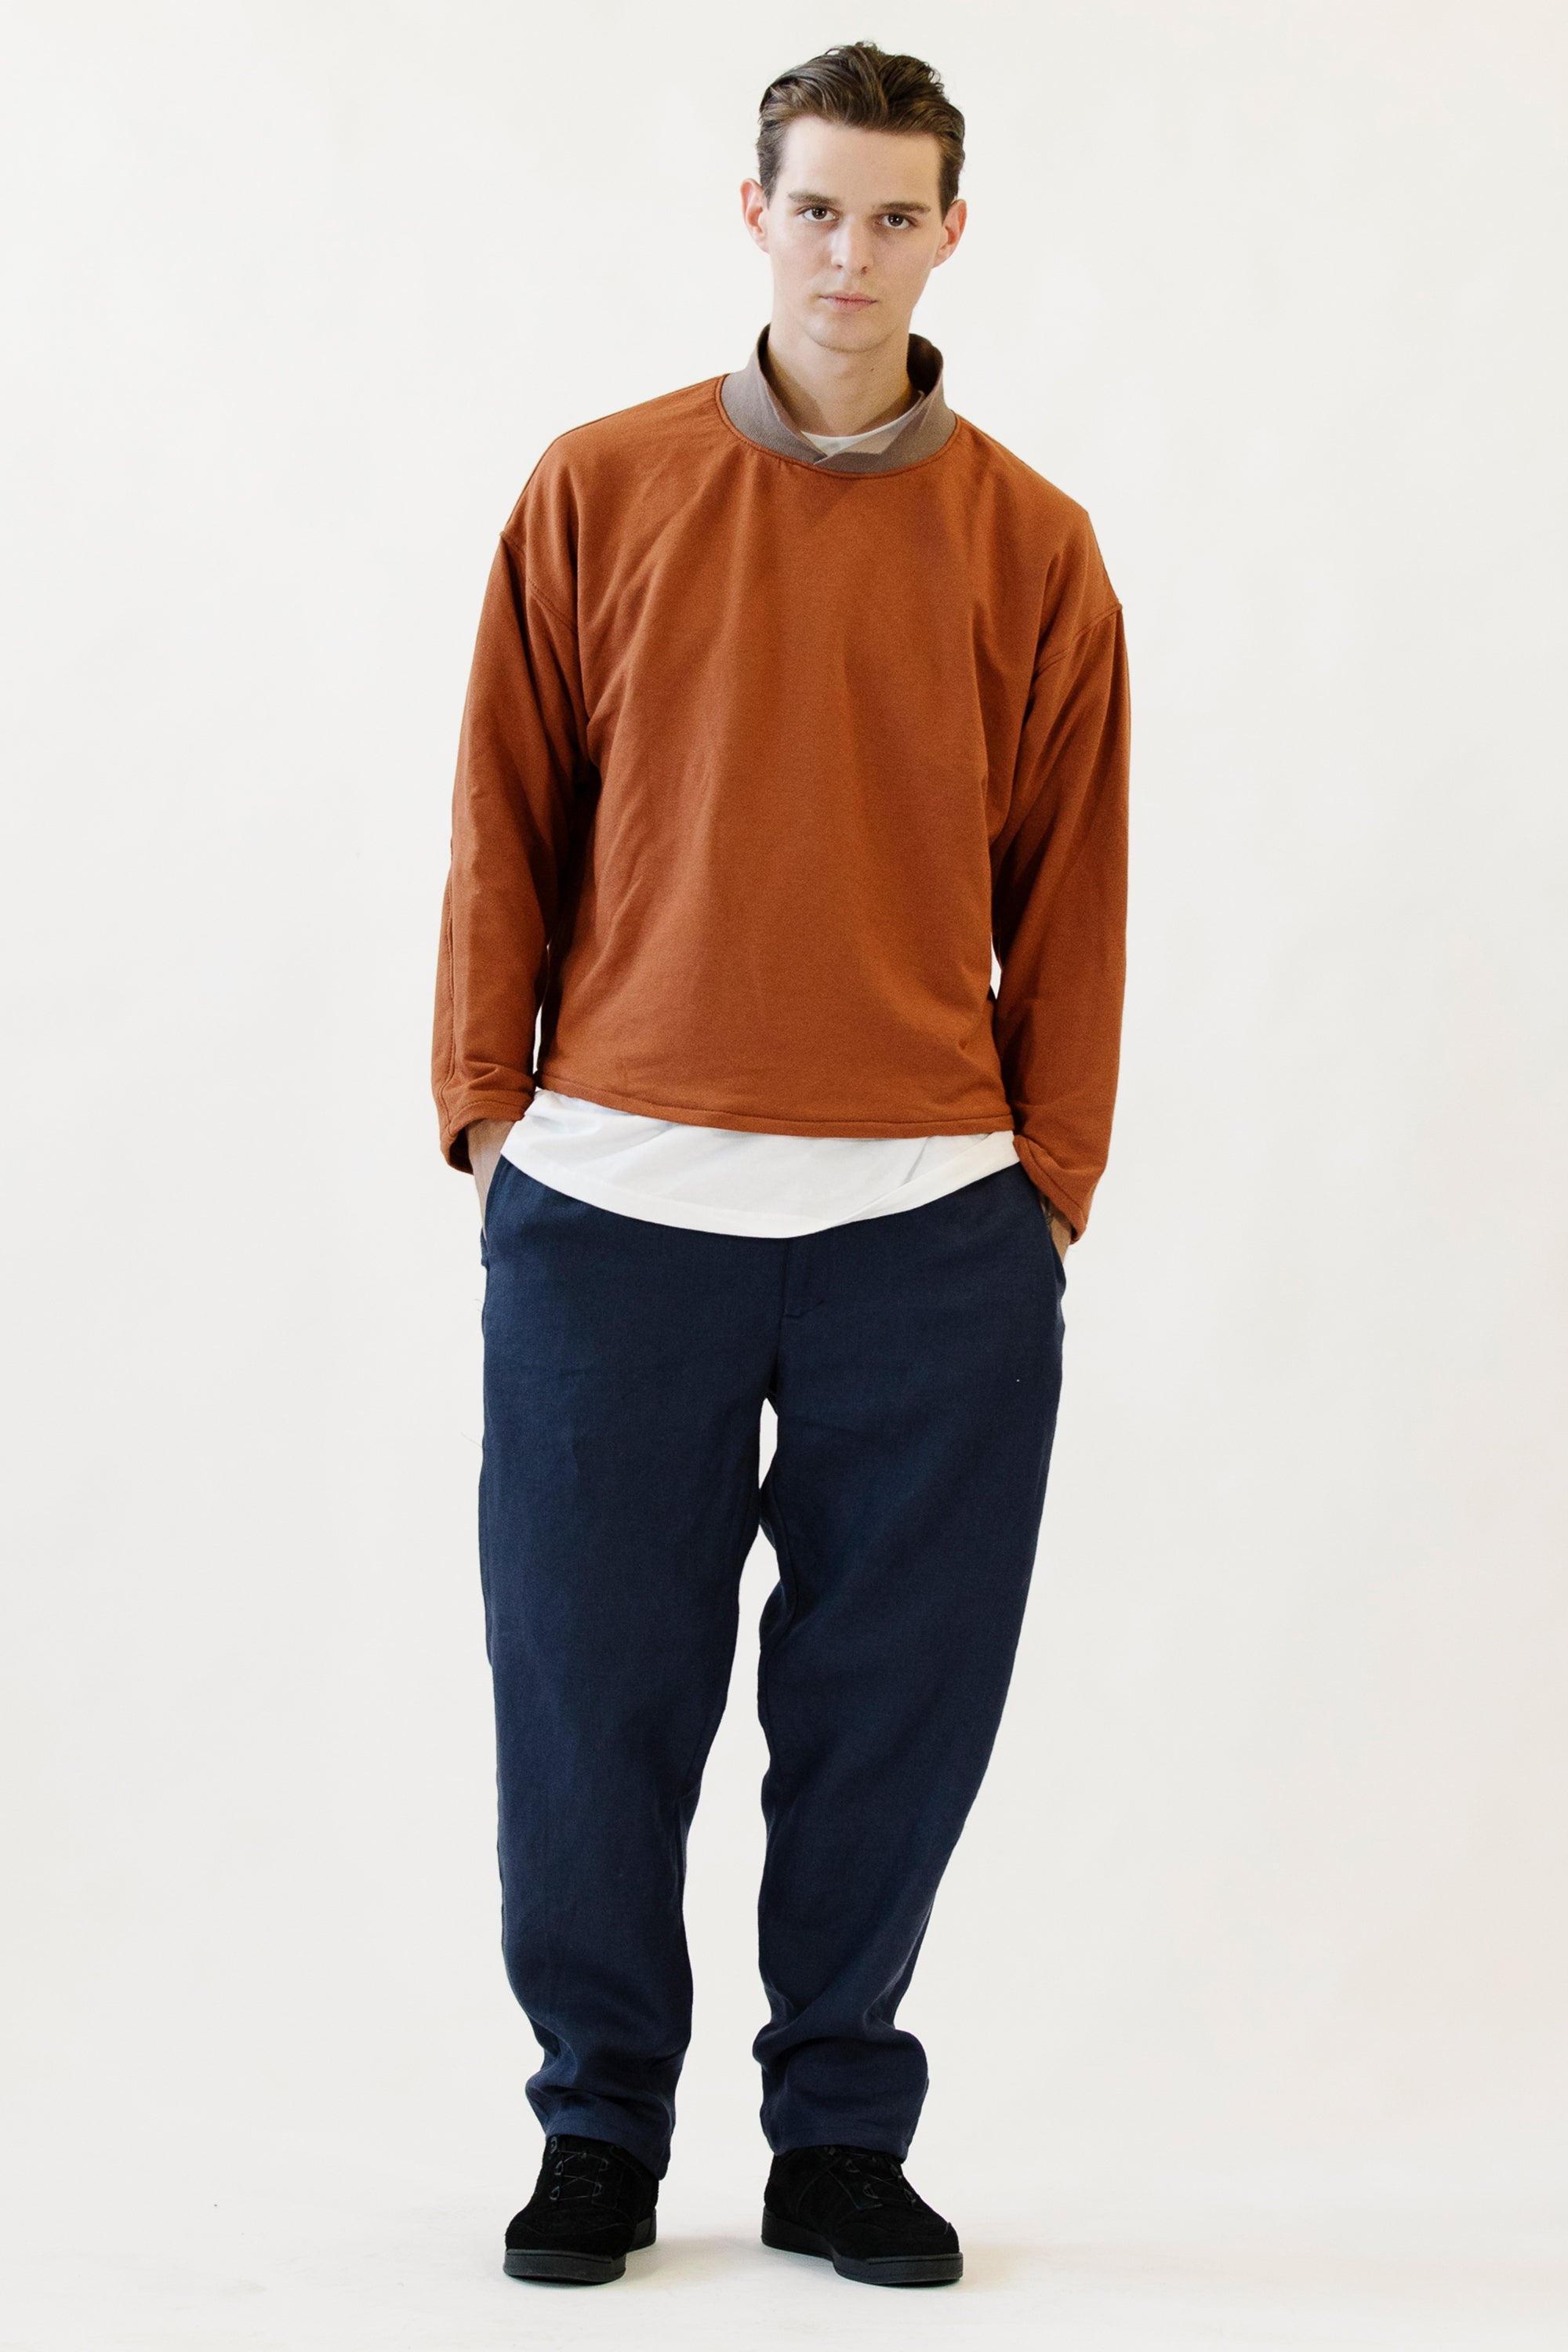 Collared Crewneck Rust in Bamboo Fleece